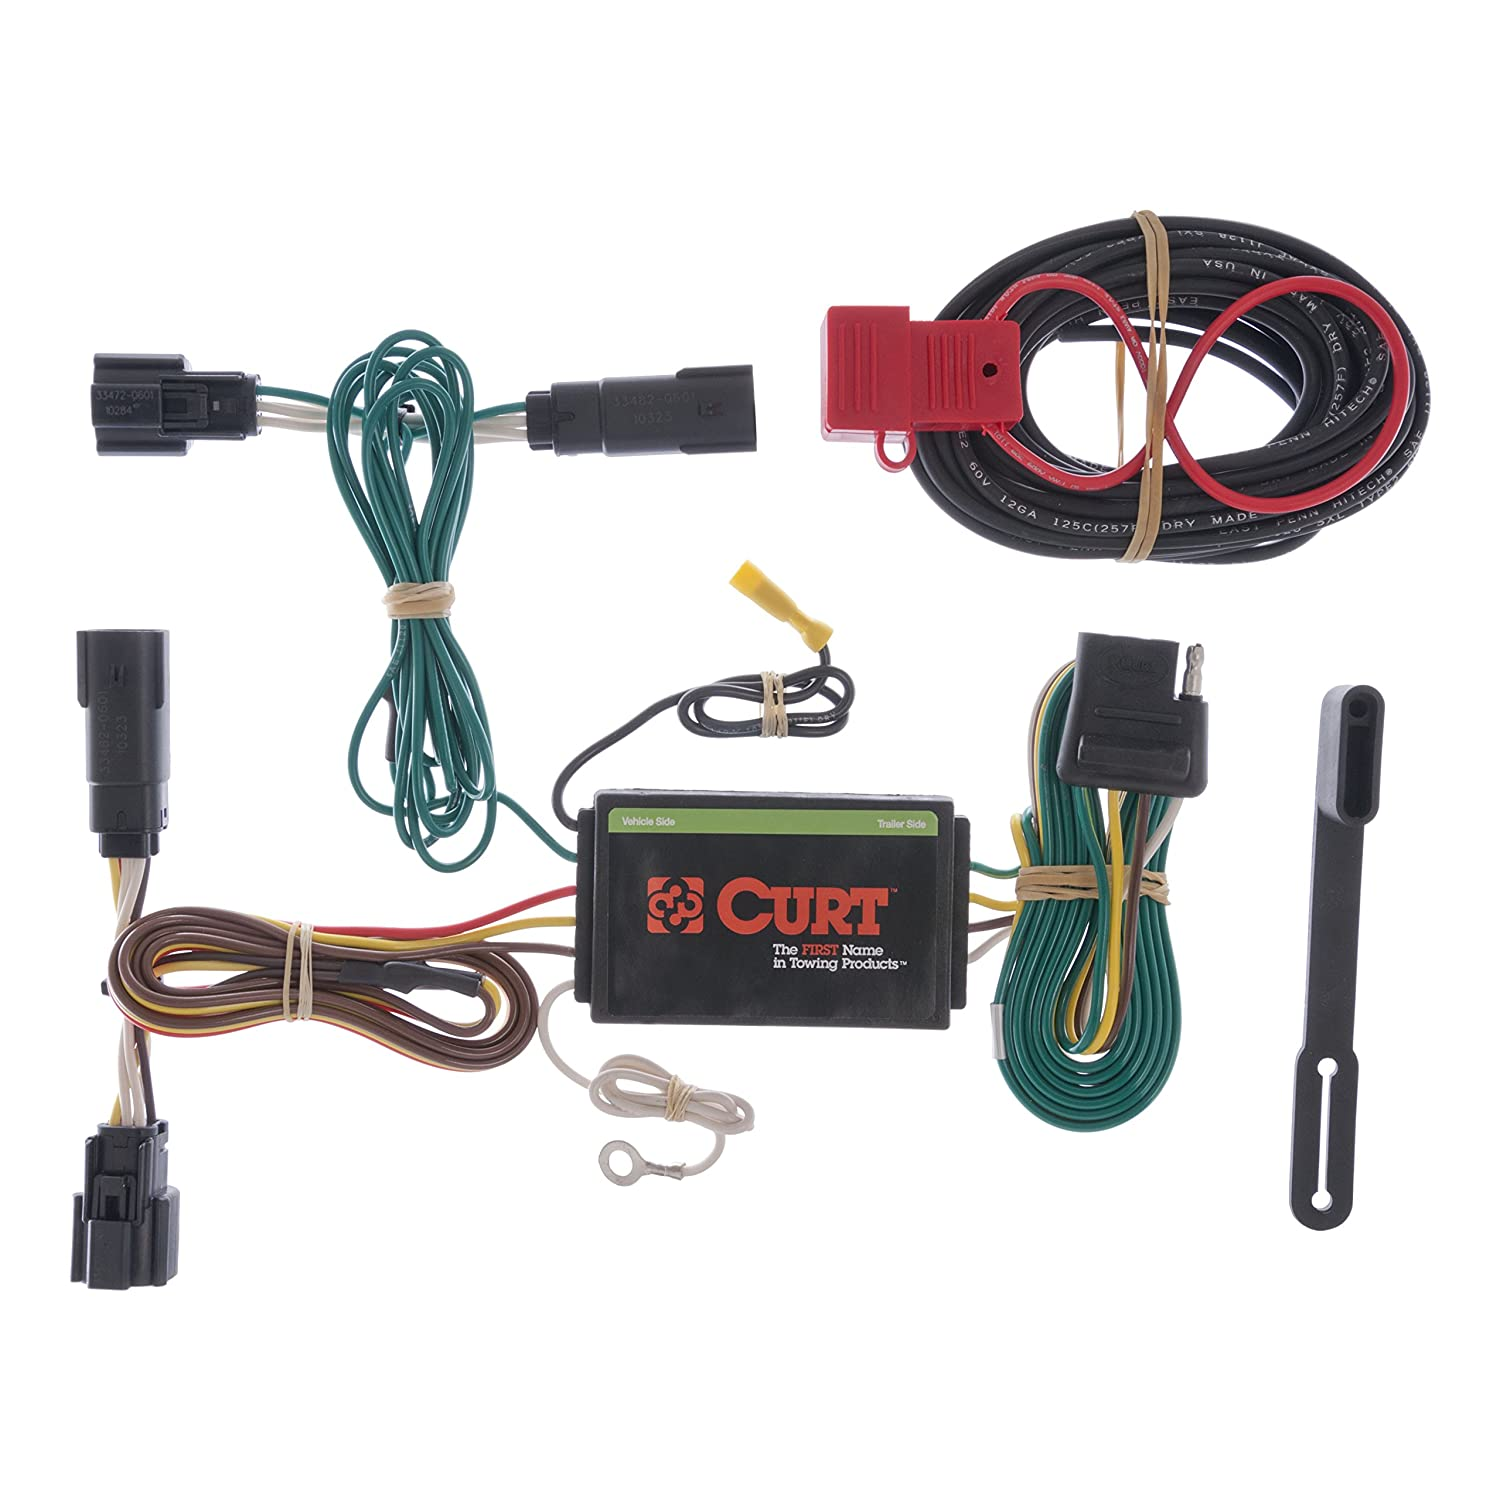 81ohhw2GXXL._SL1500_ amazon com curt 56120 custom wiring harness automotive 2014 ford edge trailer wiring harness at n-0.co